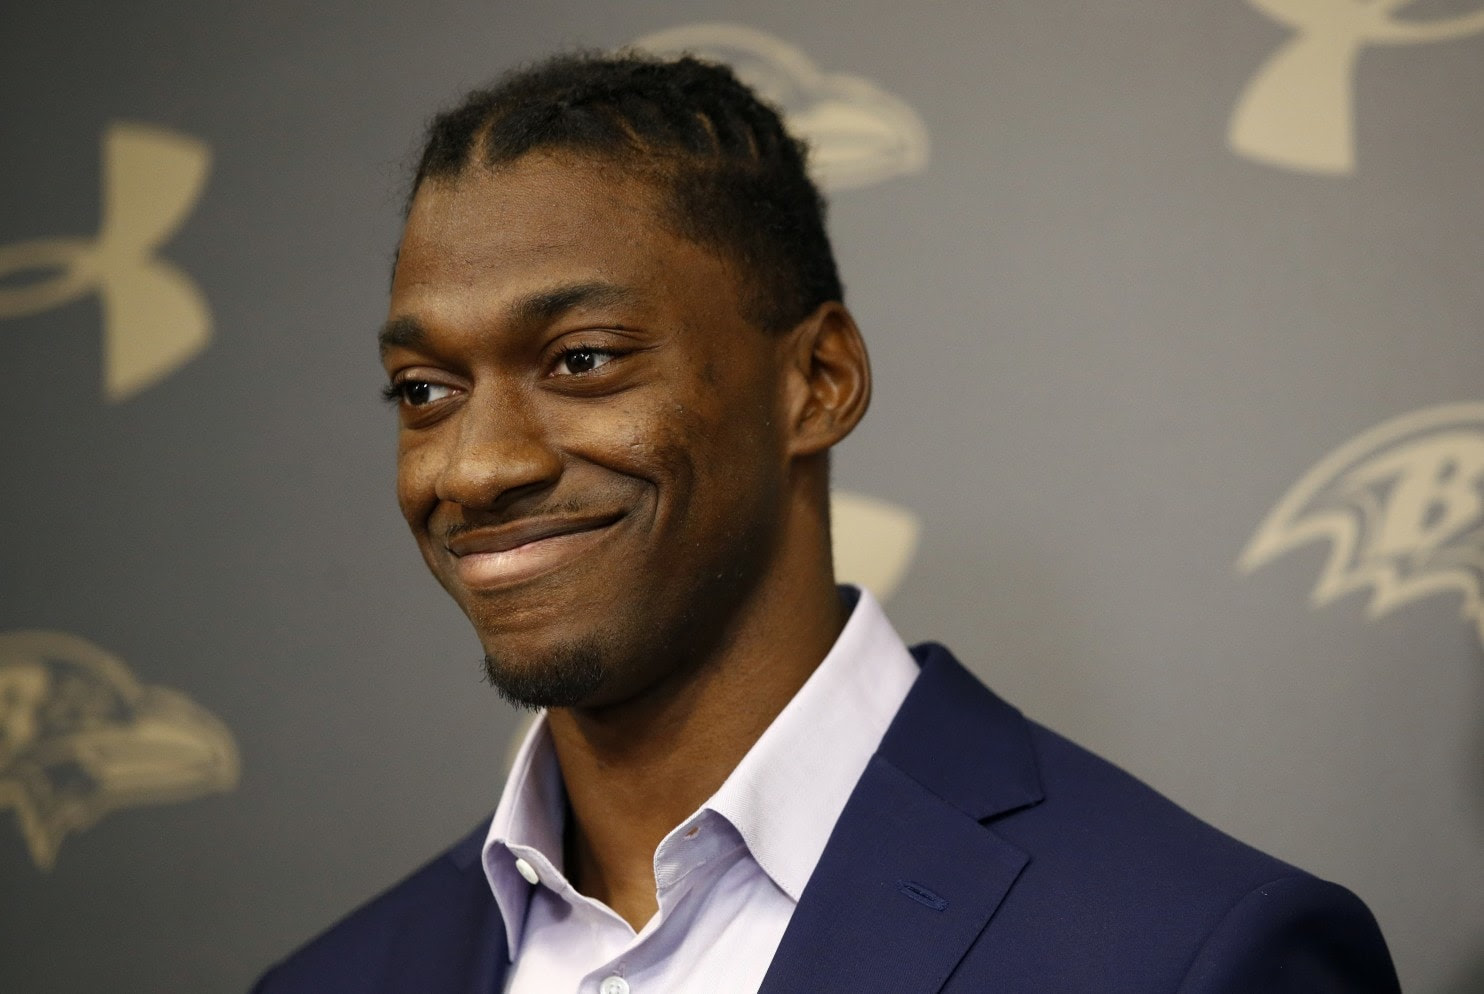 On April 4, 2017, Robert Griffin III announced he had signed a one year contract with the Ravens as a backup QB for an undisclosed amount of money.